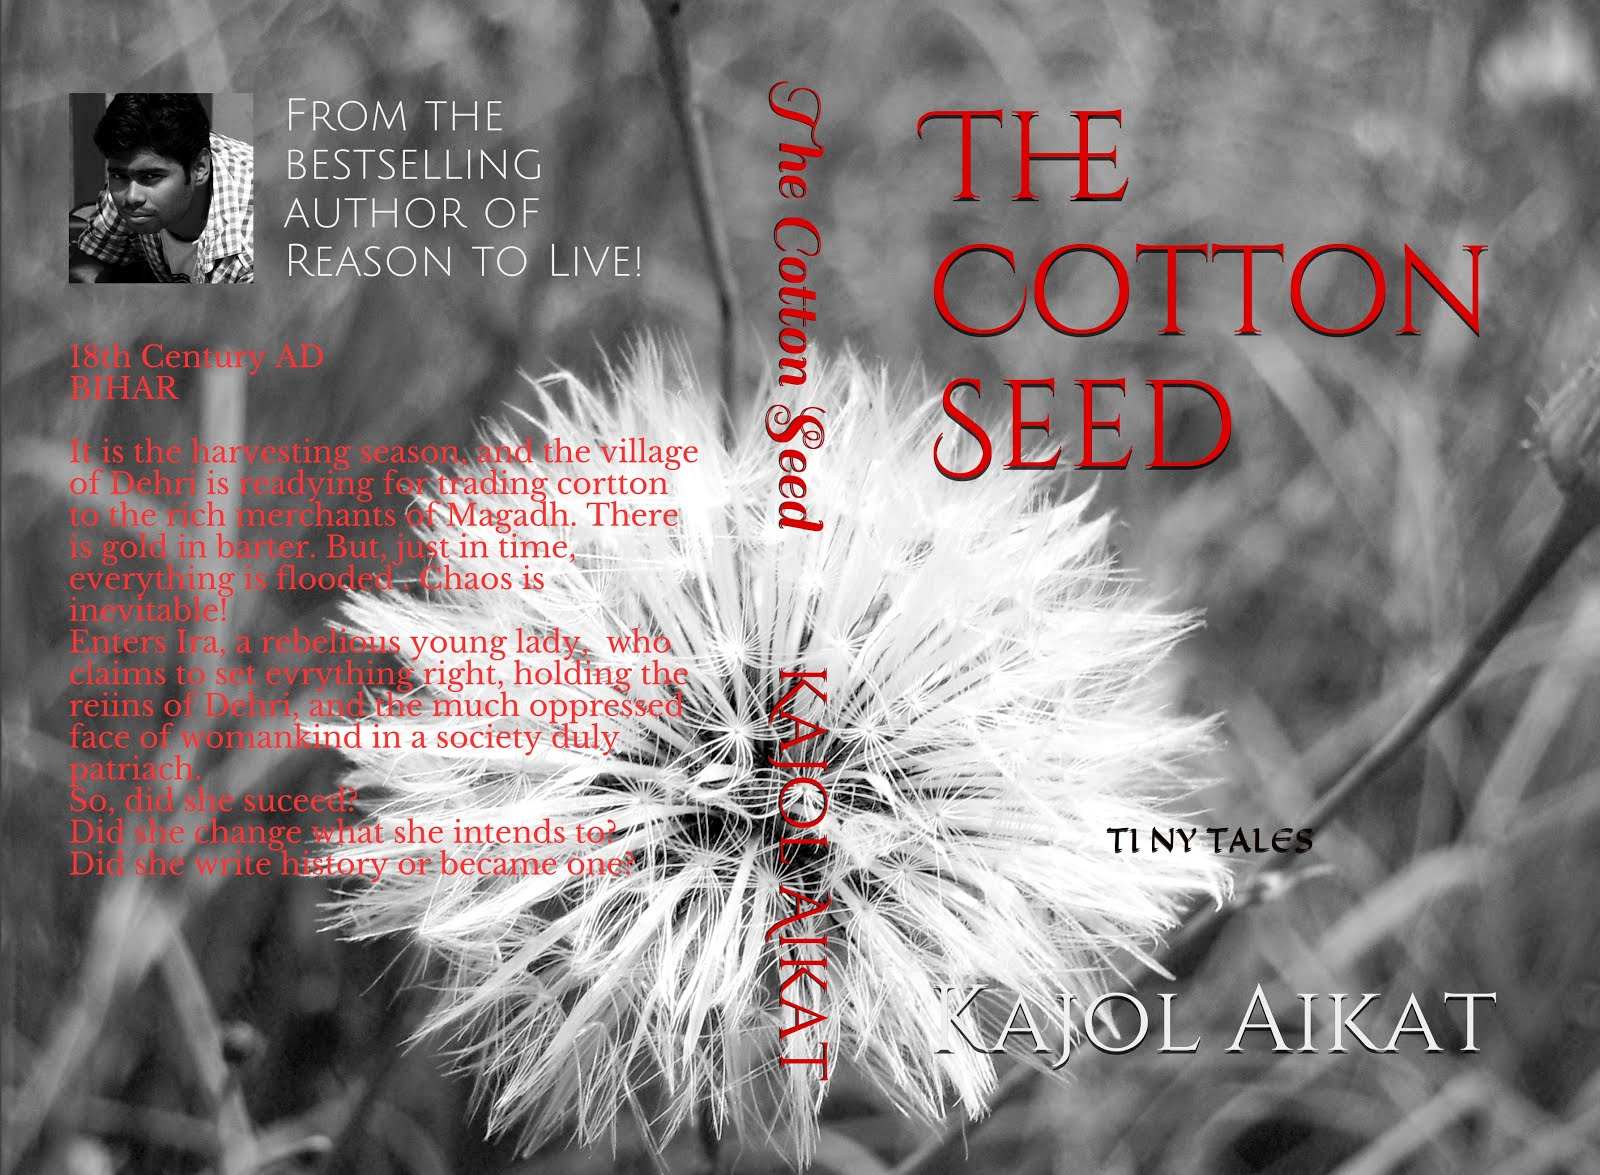 THE COTTON SEED